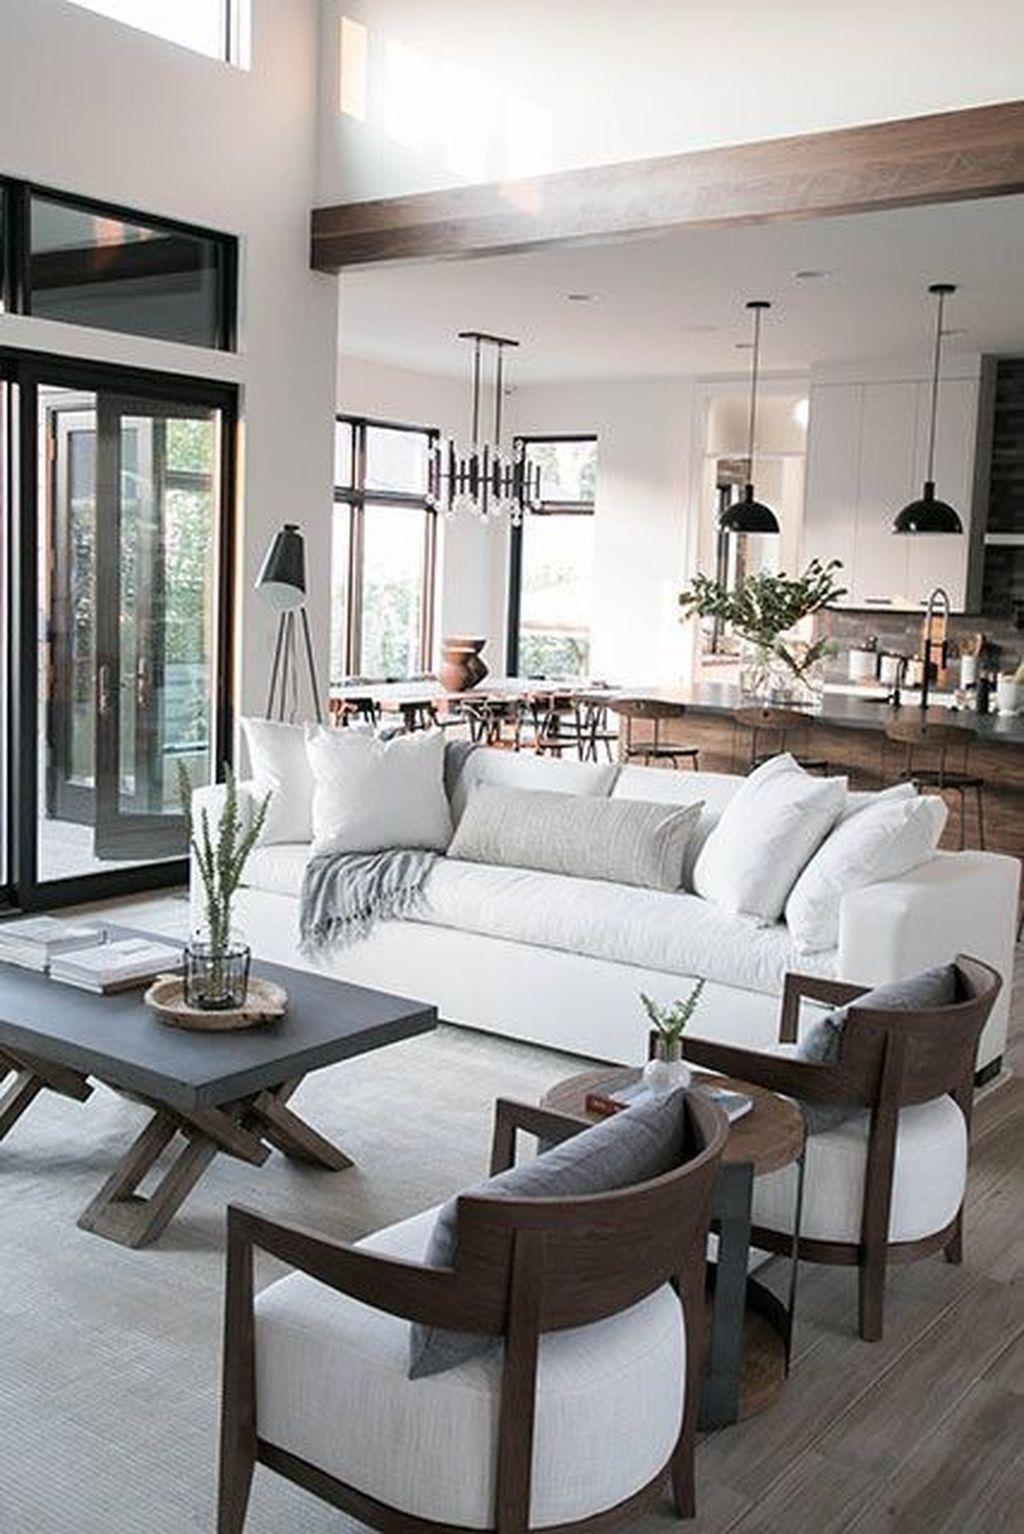 English Country Decor Modern Living Furniture Ideas Modern Living Room Furn In 2020 Rustic Living Room Design Neutral Living Room Design Rustic Living Room #rustic #living #room #furniture #ideas